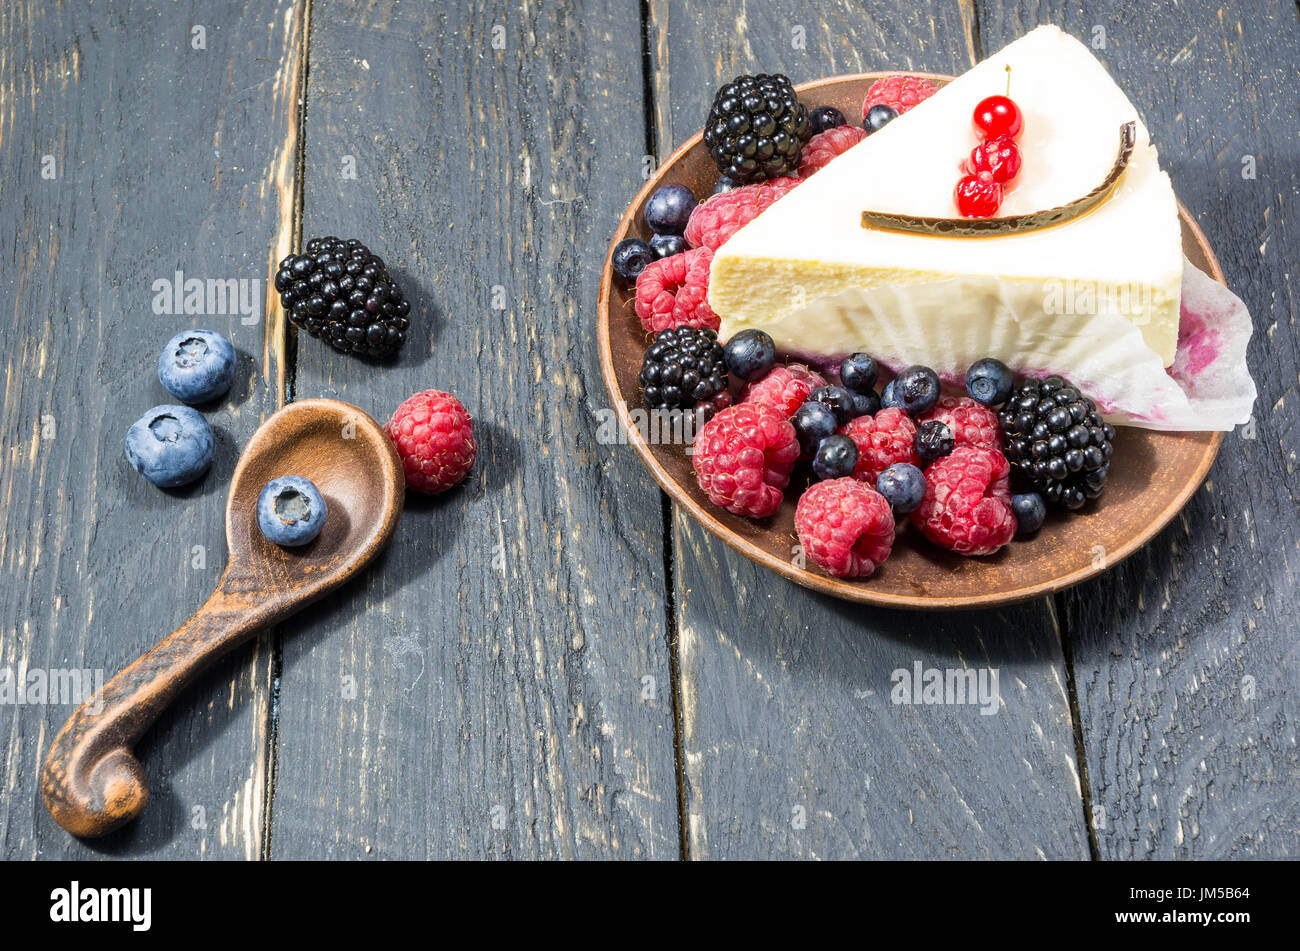 Menu des desserts aux fruits rouges dans la faïence. Baies sauvages multicolores. Photo Stock